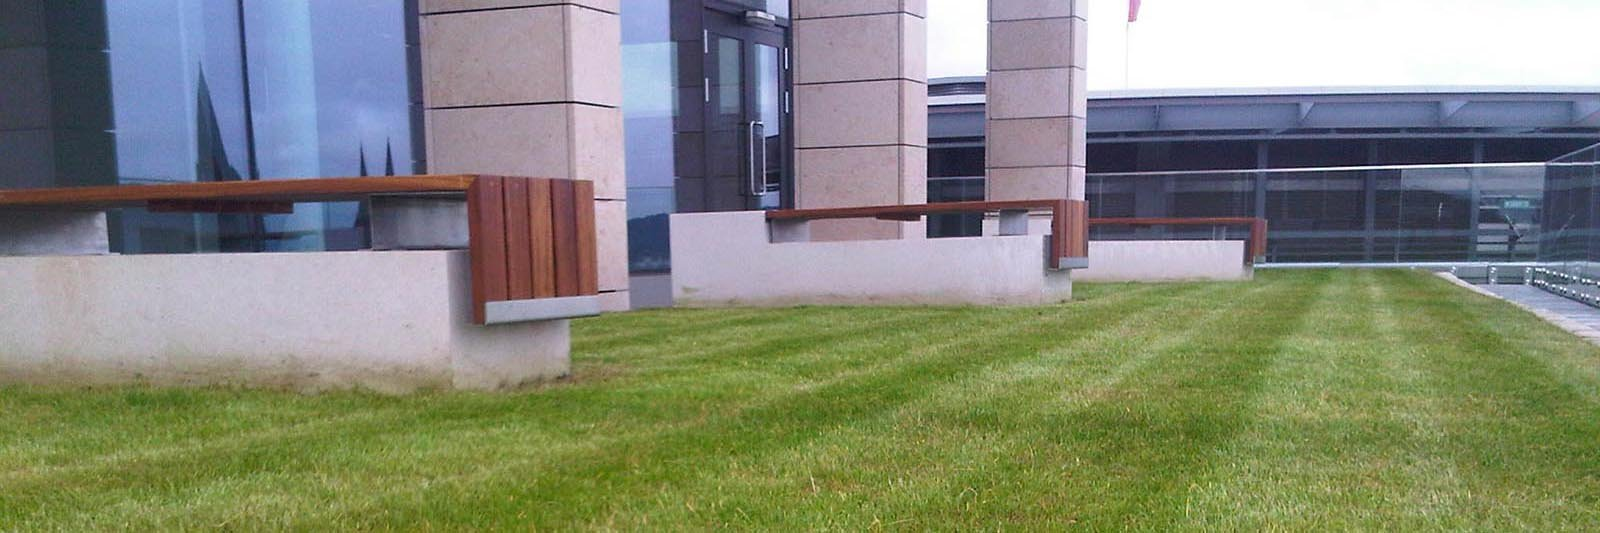 Landscaped lawns neatly mown with stripes on an Edinburgh city centre roof terrace with glass balustrades